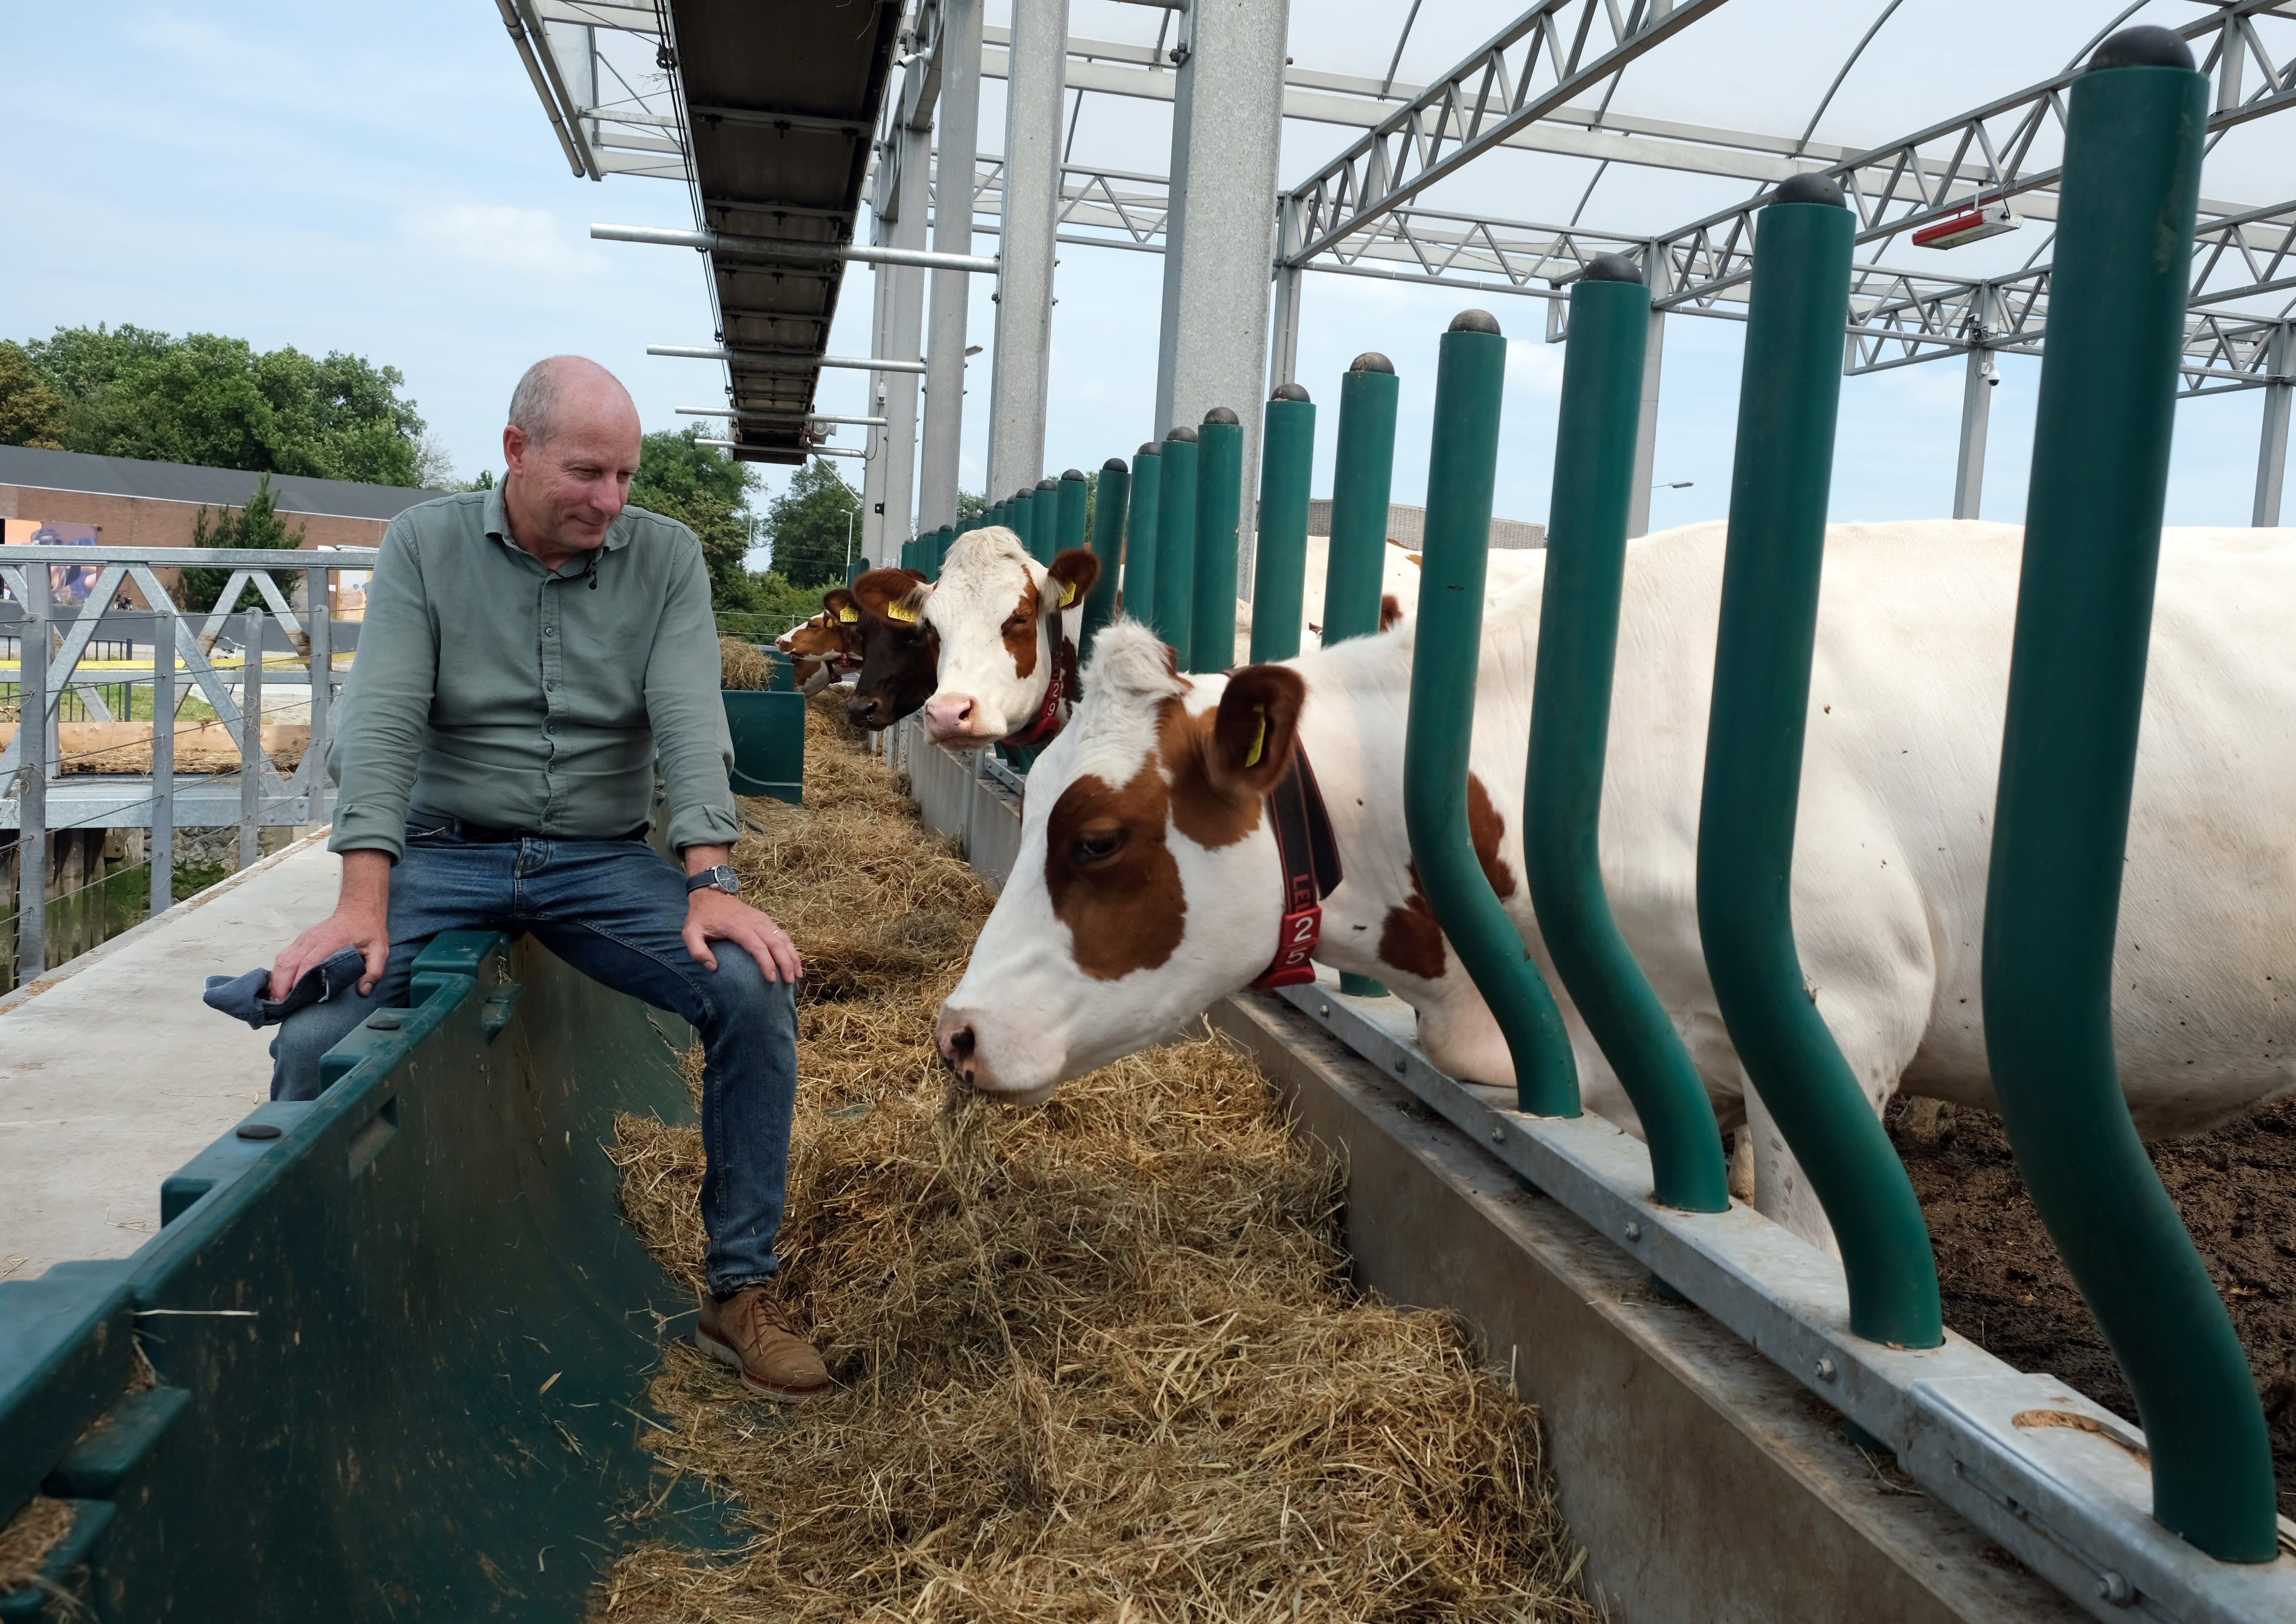 In this photo taken Monday, June 24, 2019, Peter van Wingerden poses with his herd aboard a futuristic three-storey floating dairy farm moored in Rotterdam harbour, Netherlands. The floating dairy farm has one robot that milks the cows, another that automatically scoops up the manure, and a roof designed to collect rain water, along with using waste products from local industry to make it a sustainable inner-city producer of dairy foods aimed at feeding future generations of city dwellers according to the small holding farmer Peter van Wingerden.(AP Photo/Mike Corder)